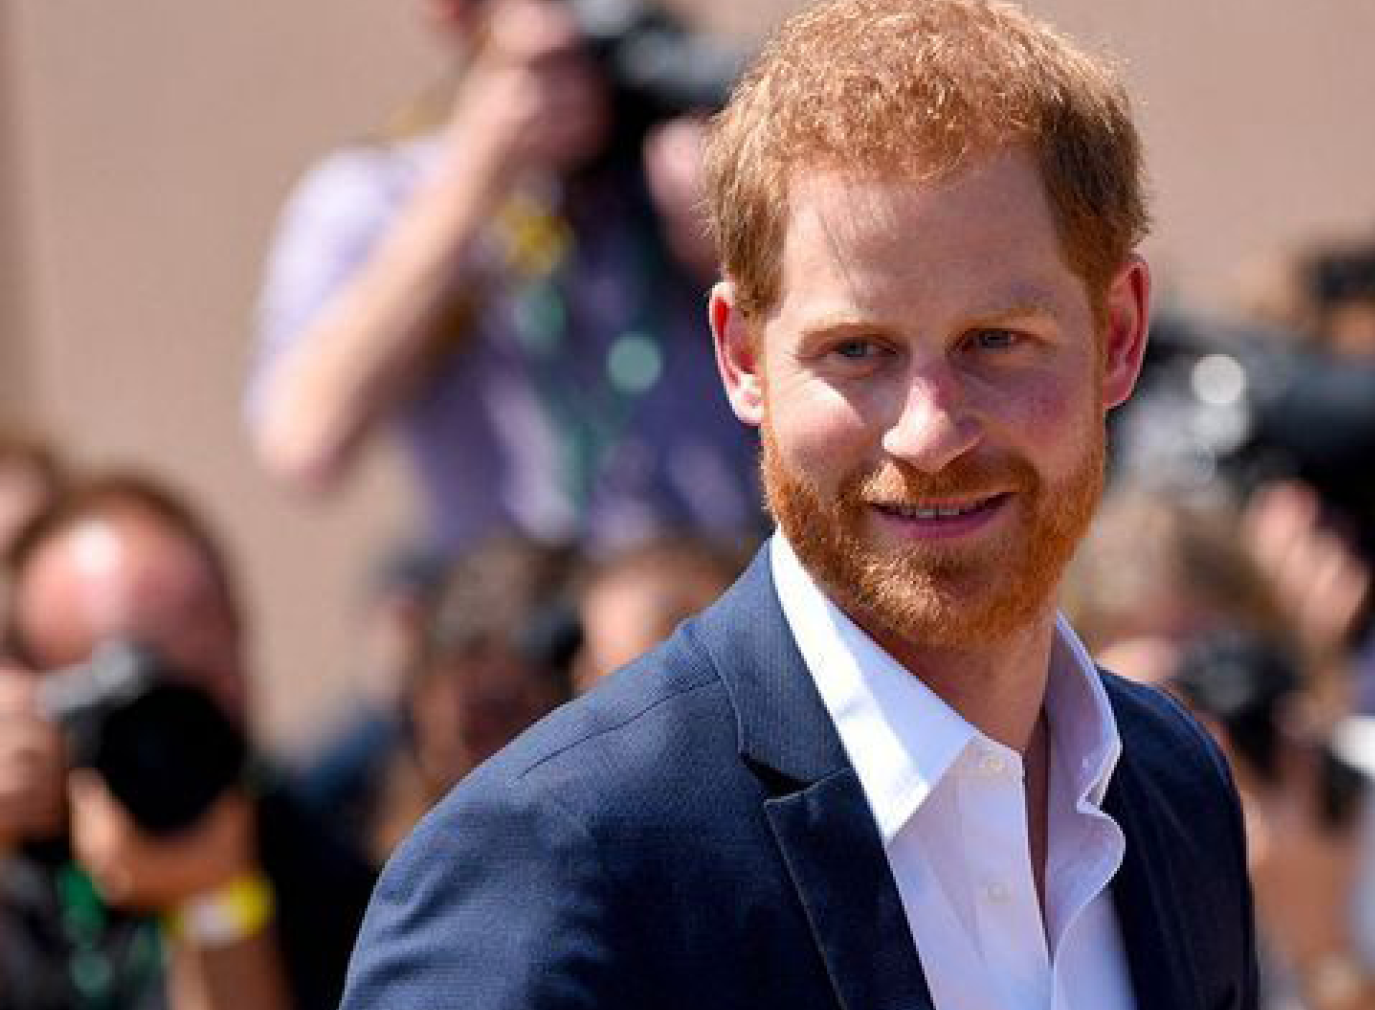 Prince Harry© DPA/ABACA